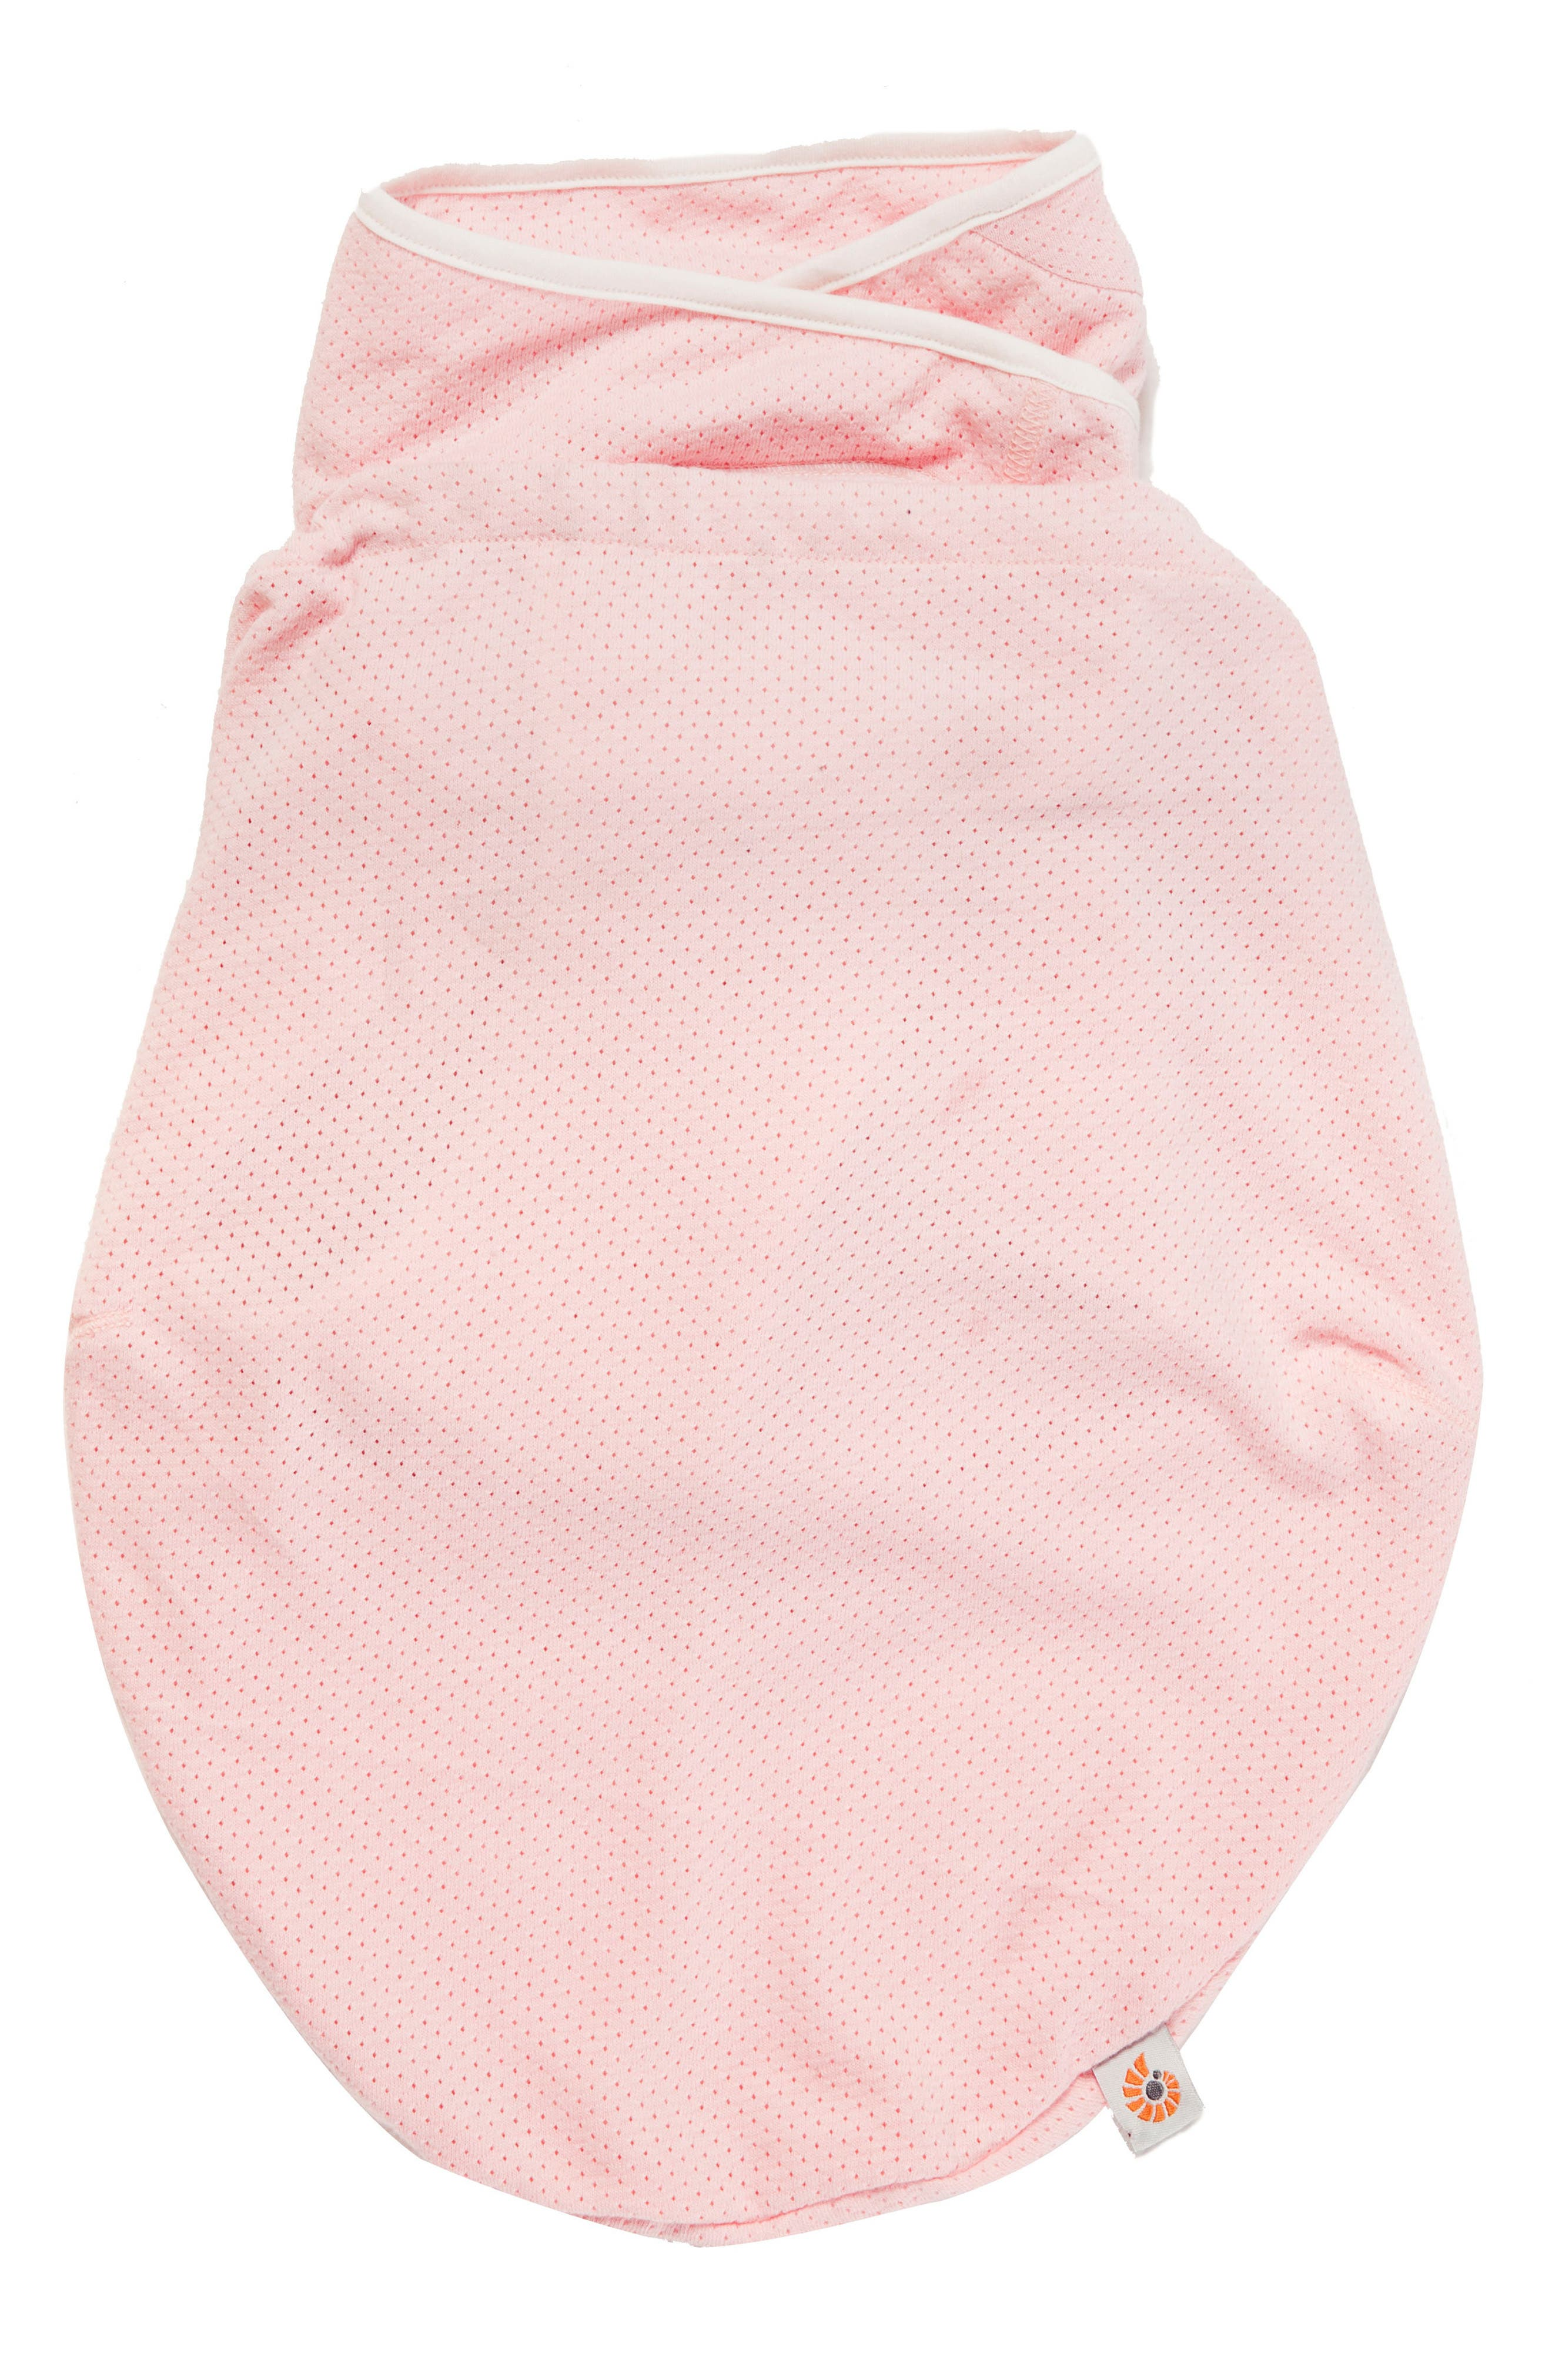 Darling Lightweight Swaddler,                             Main thumbnail 1, color,                             650